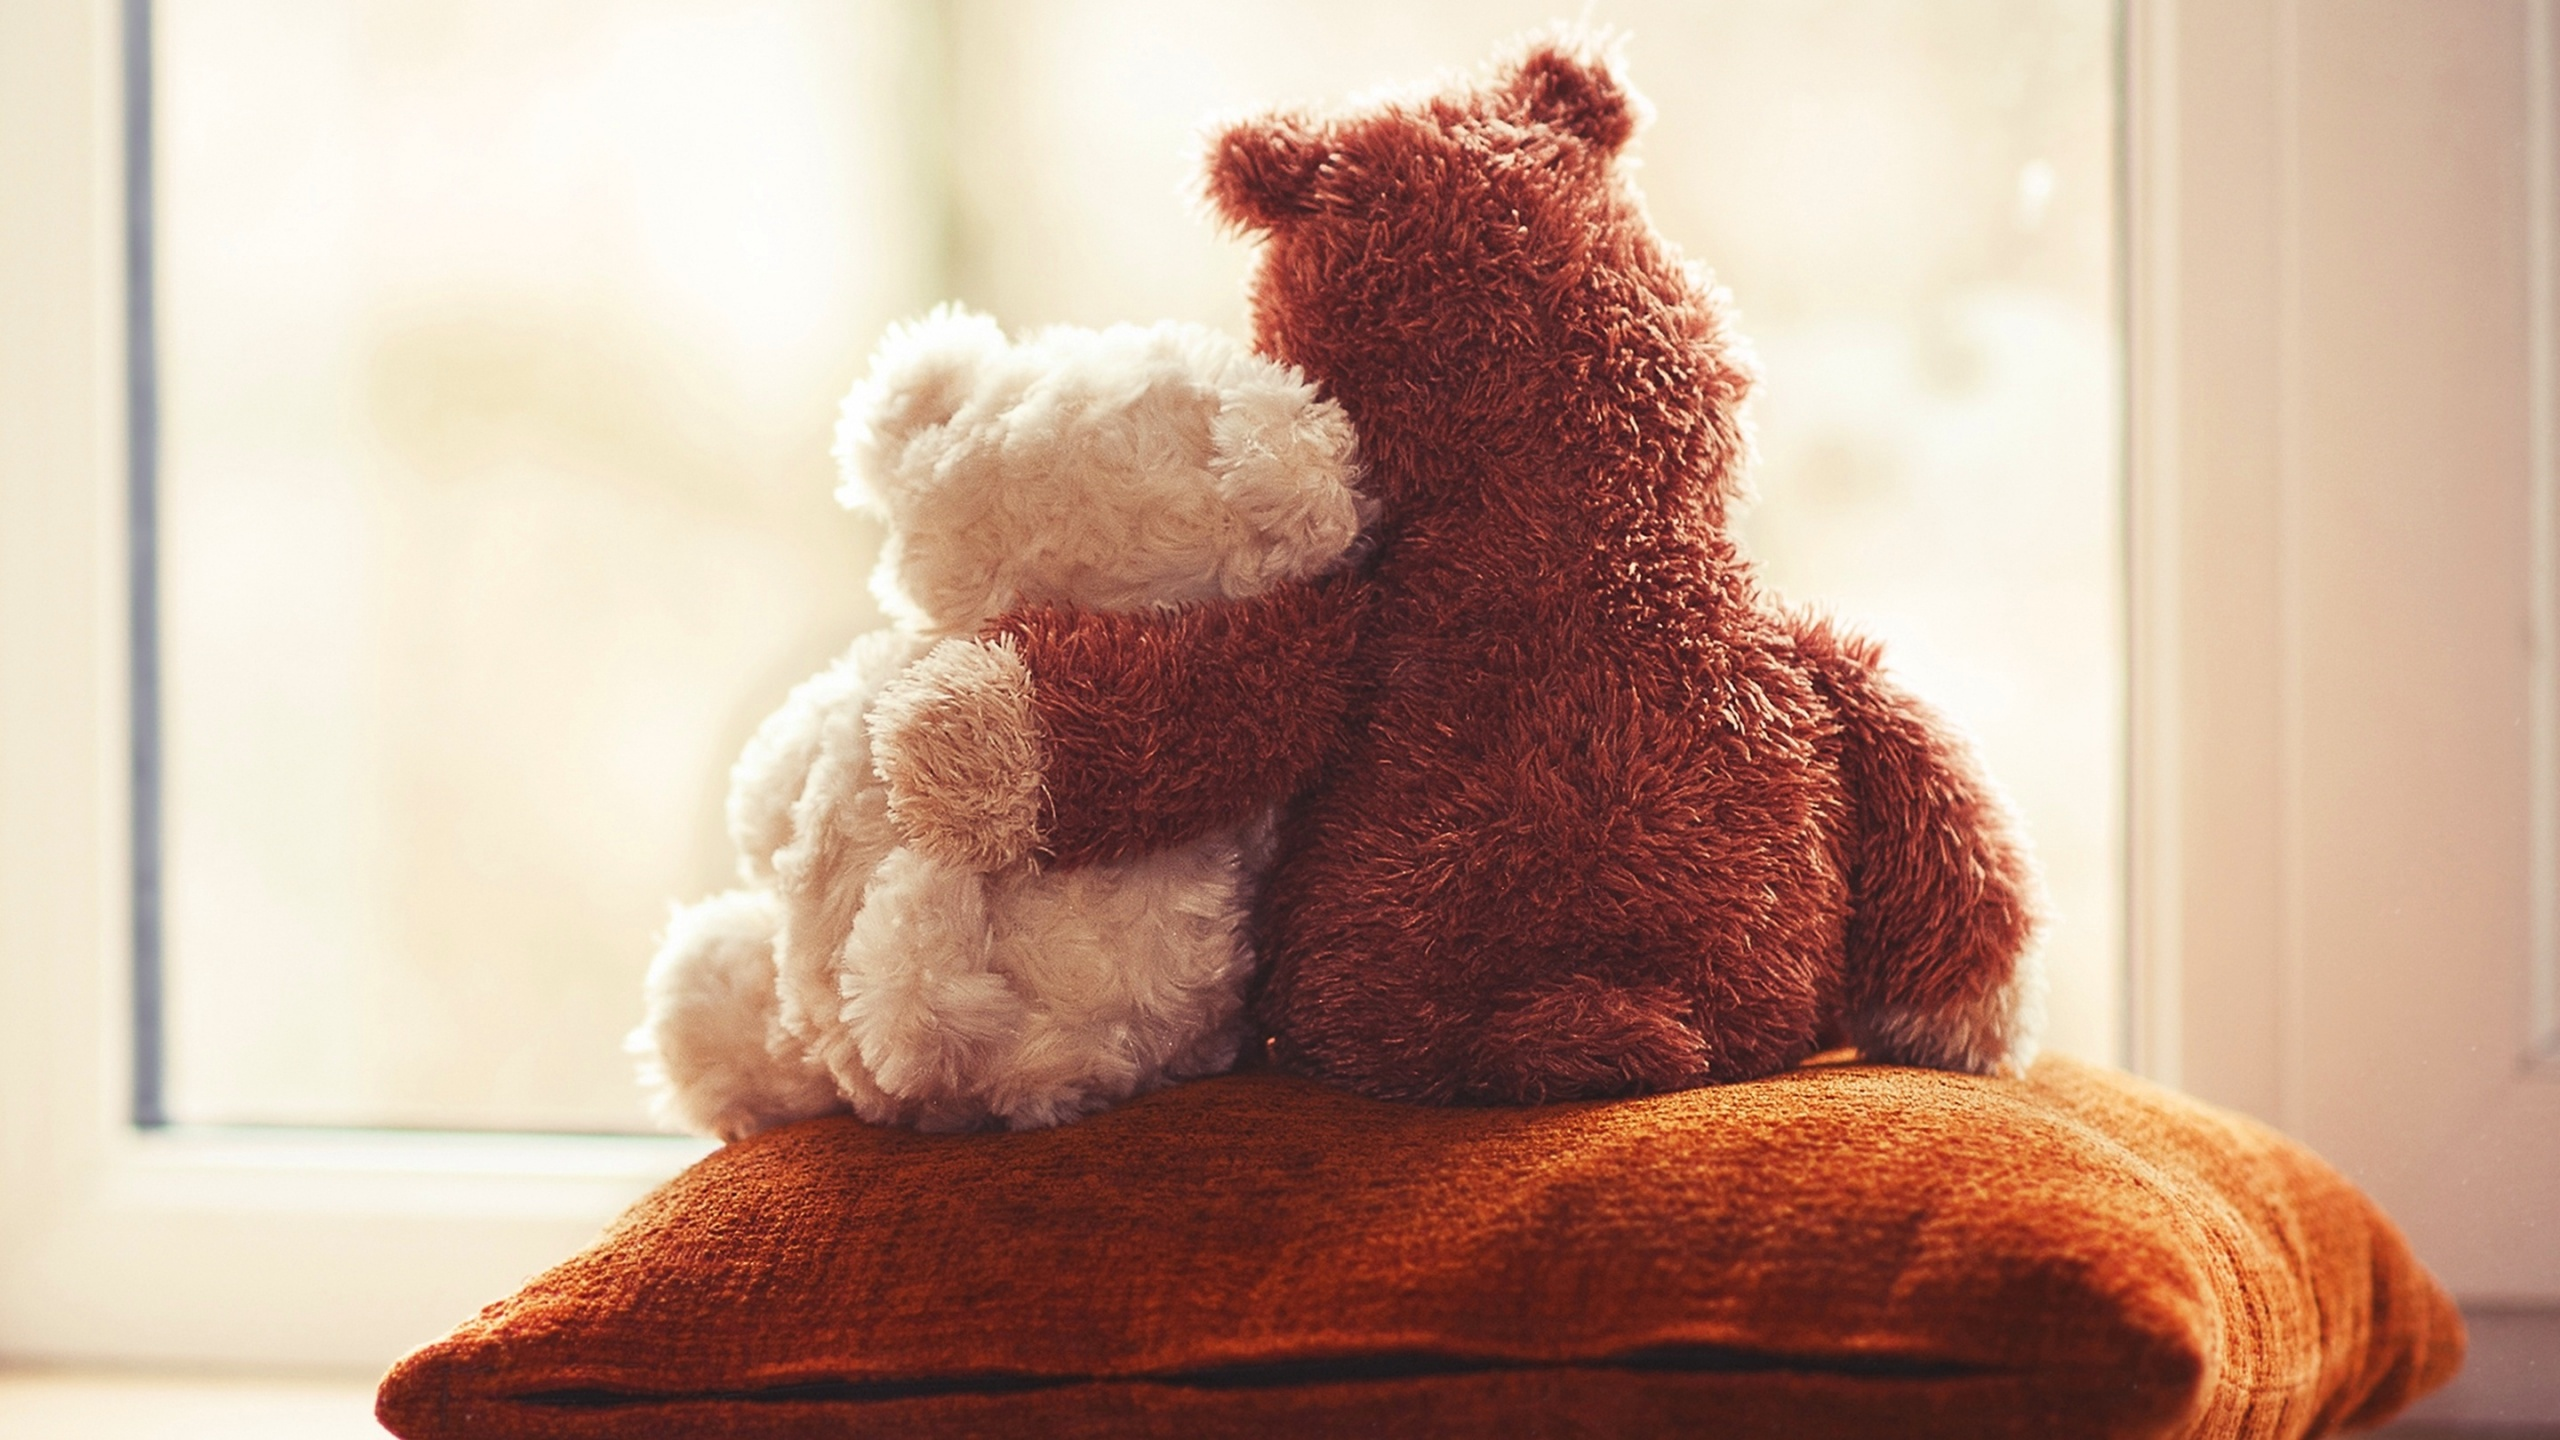 cute Teddy Bear couple Love Wallpapers - 2560x1440 - 817295